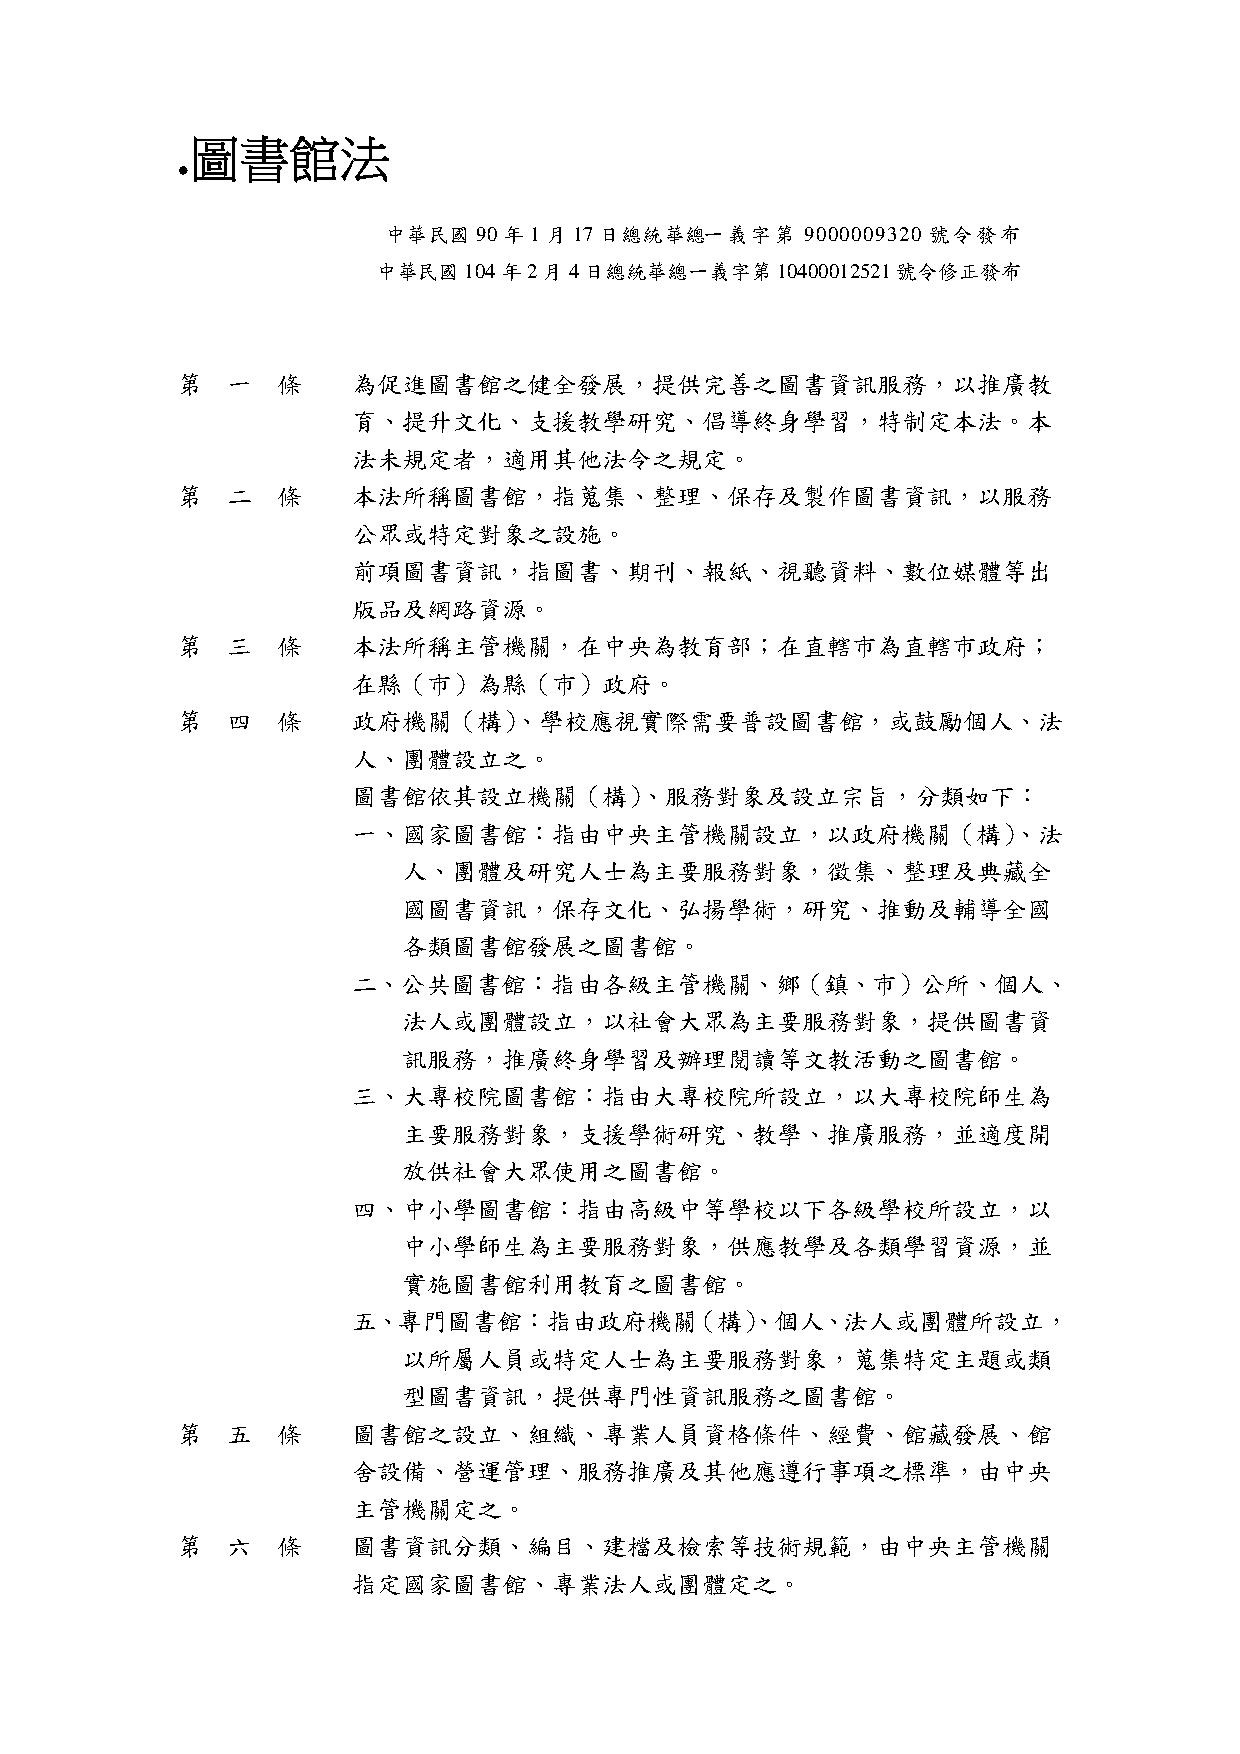 File:Libraries Act (Republic of China) 20150204.pdf - Wikimedia Commons